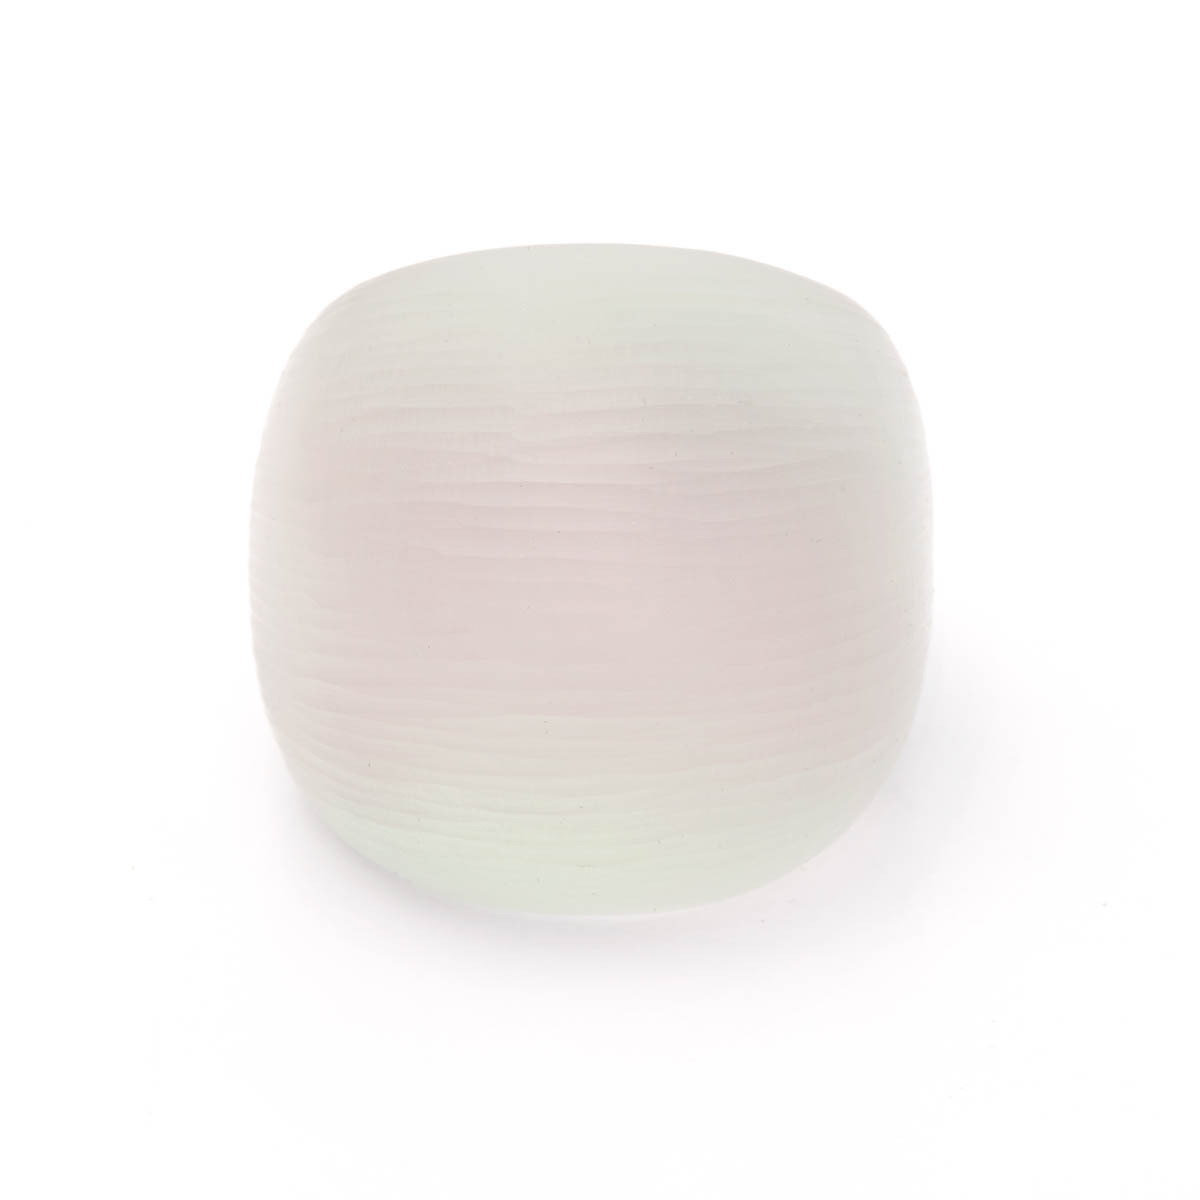 Alexis bittar Dome Ring in White